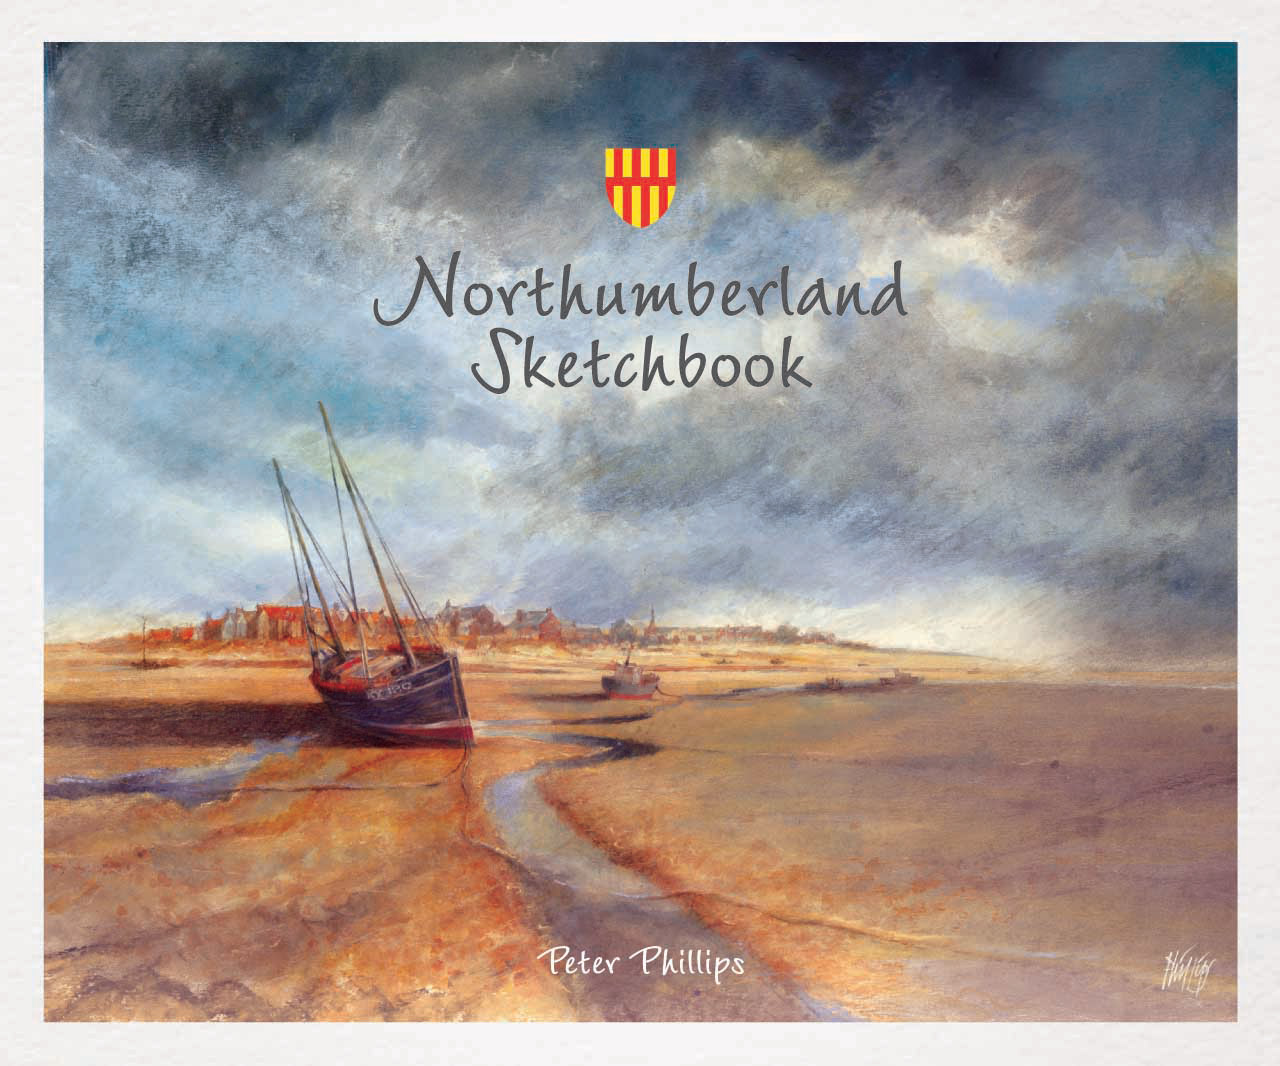 the 'Northumberland Sketchbook' cover